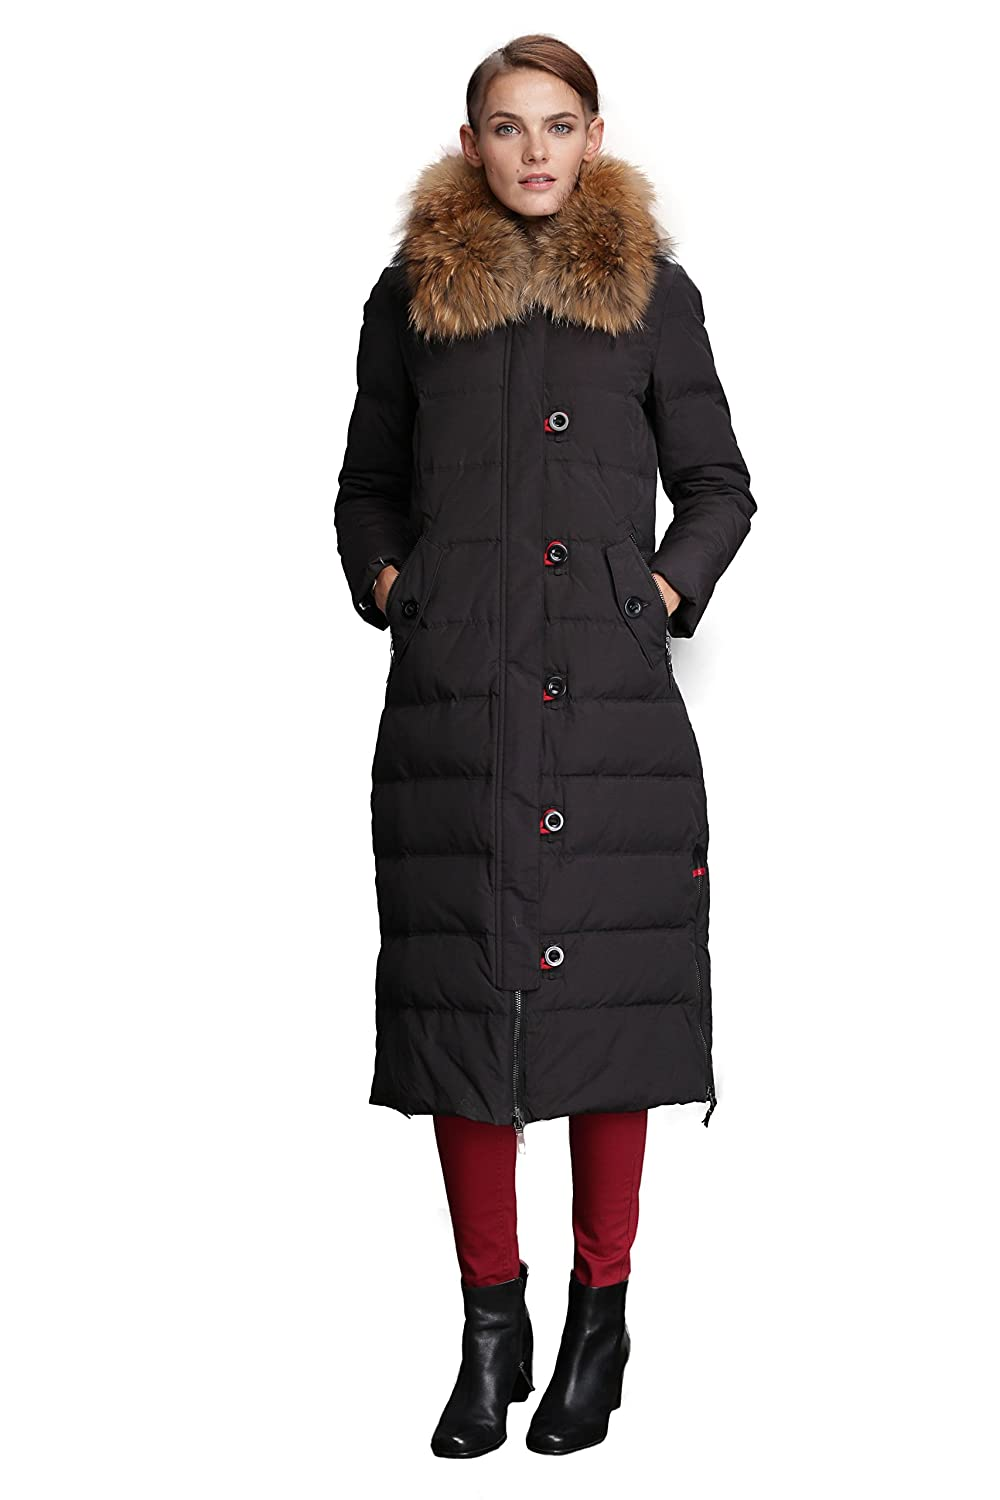 Fast Sister Women's Stylish Down Jackets Down Coats Parka